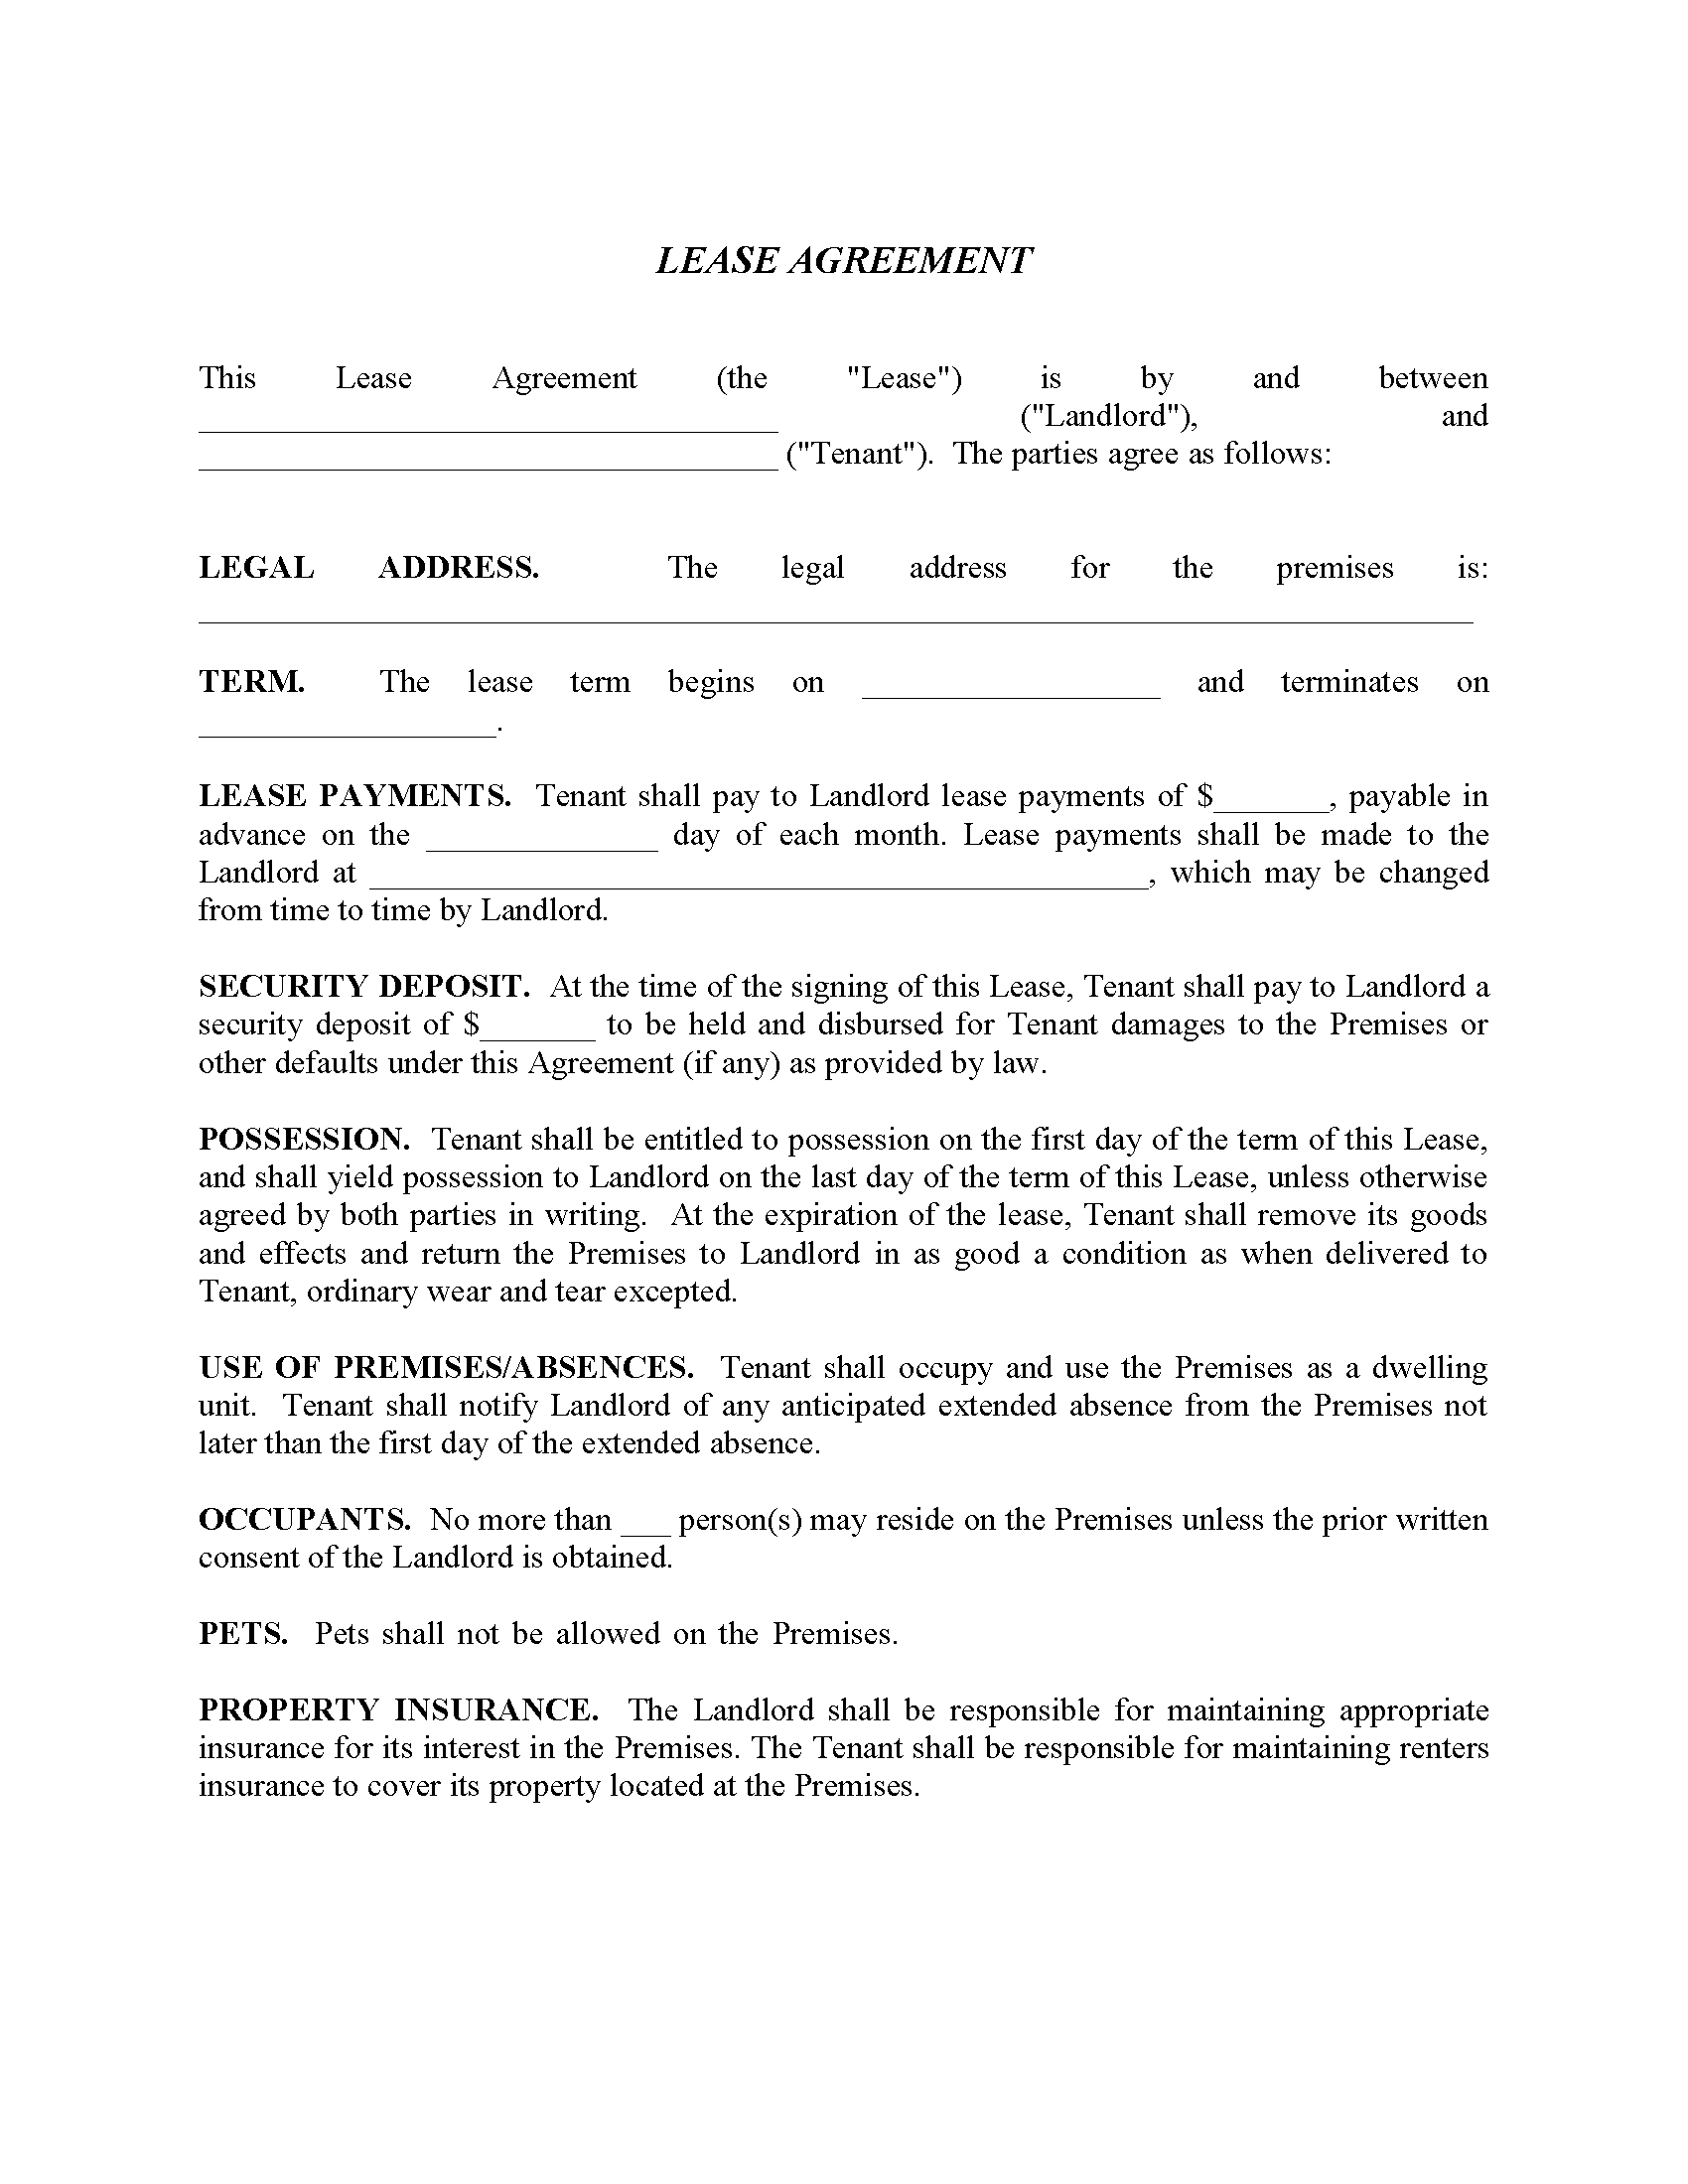 Residential Lease Agreement Form - No Pets